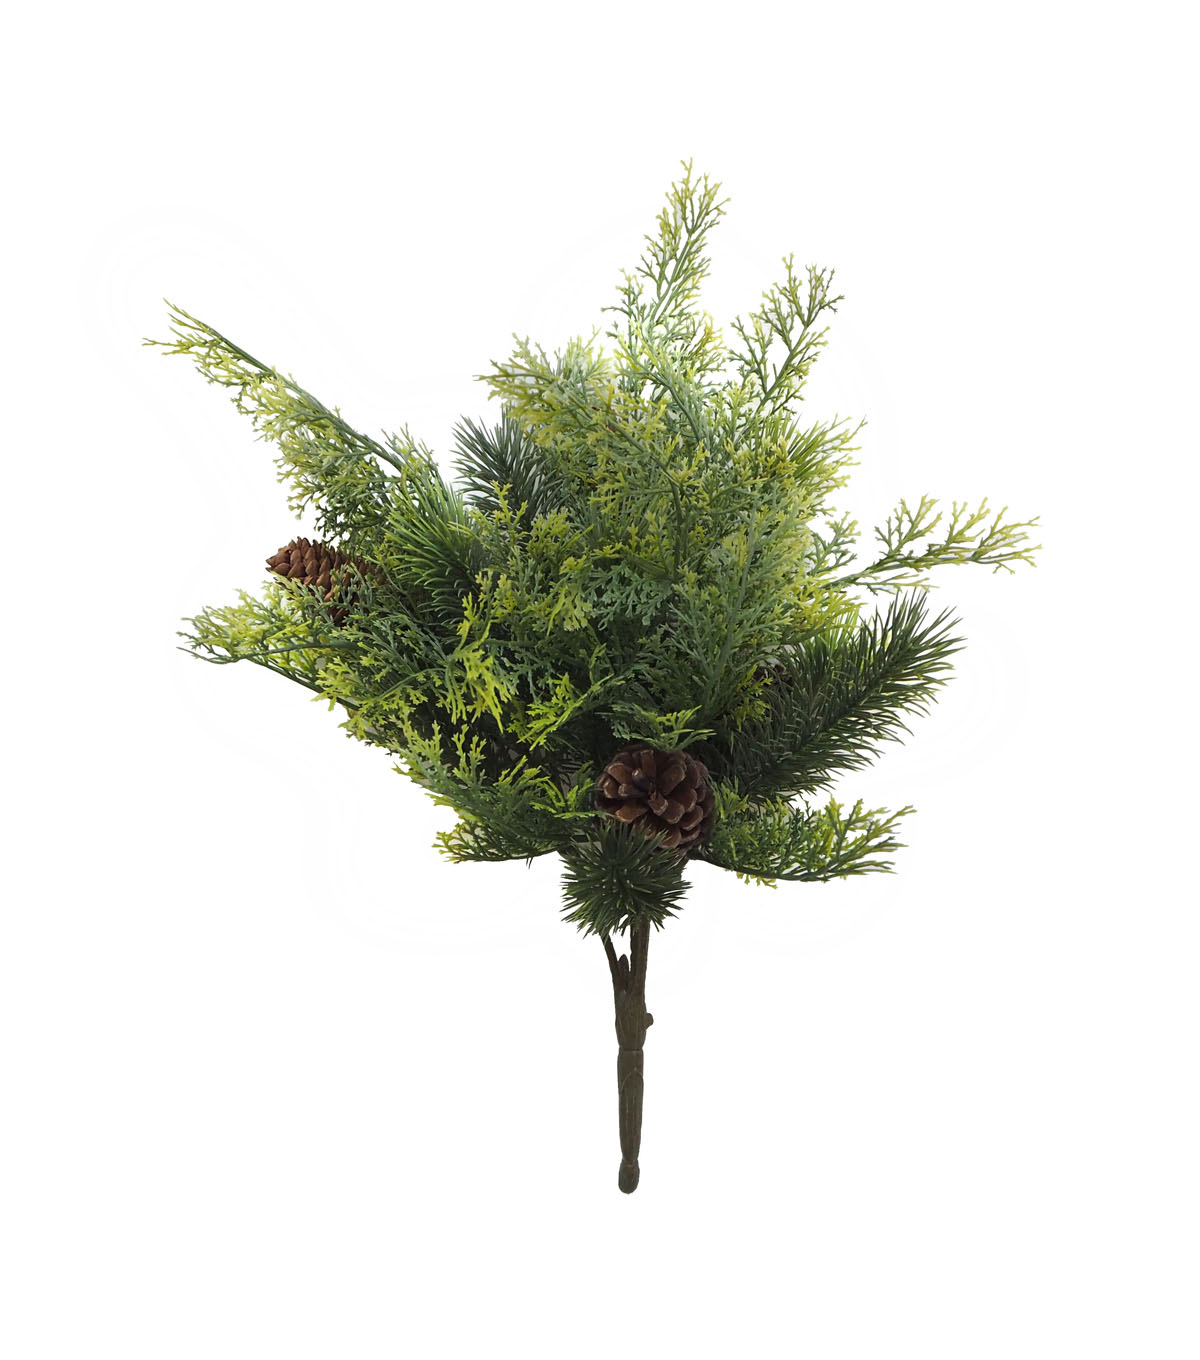 Handmade Holiday Christmas Greenery & Pinecone Outdoor Bush